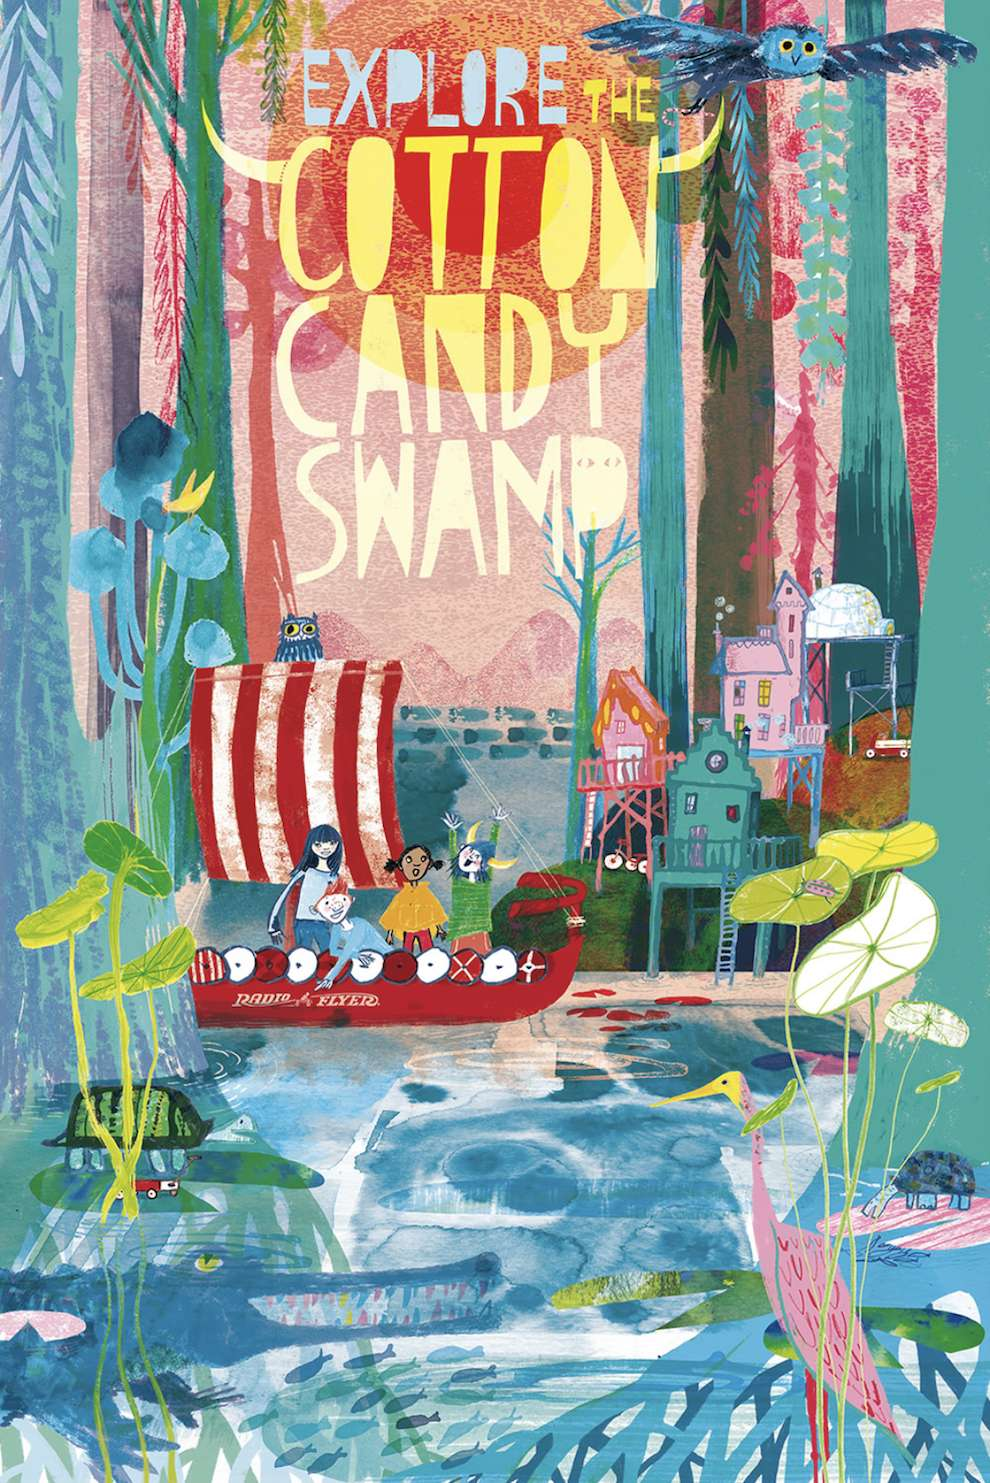 Jill Calder, Mix media textural book cover of children sailing on a boat in a swamp. Vibrant an colourful illustration